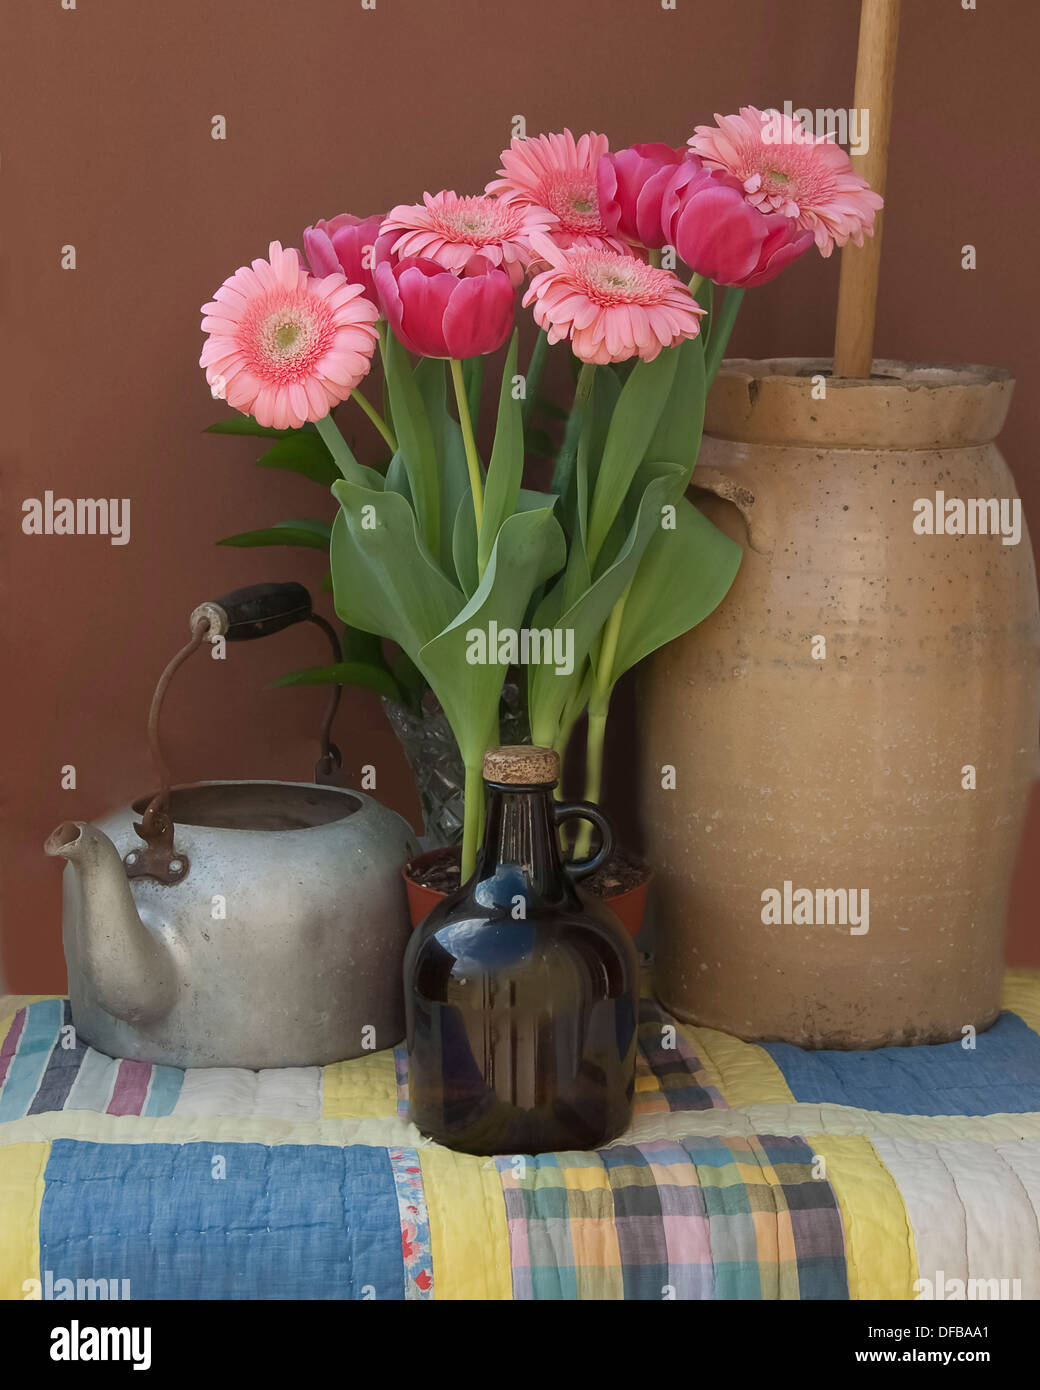 An old tea pot, jug, a butter churn with pink tulips and pink gerber daisies on a quilt. - Stock Image